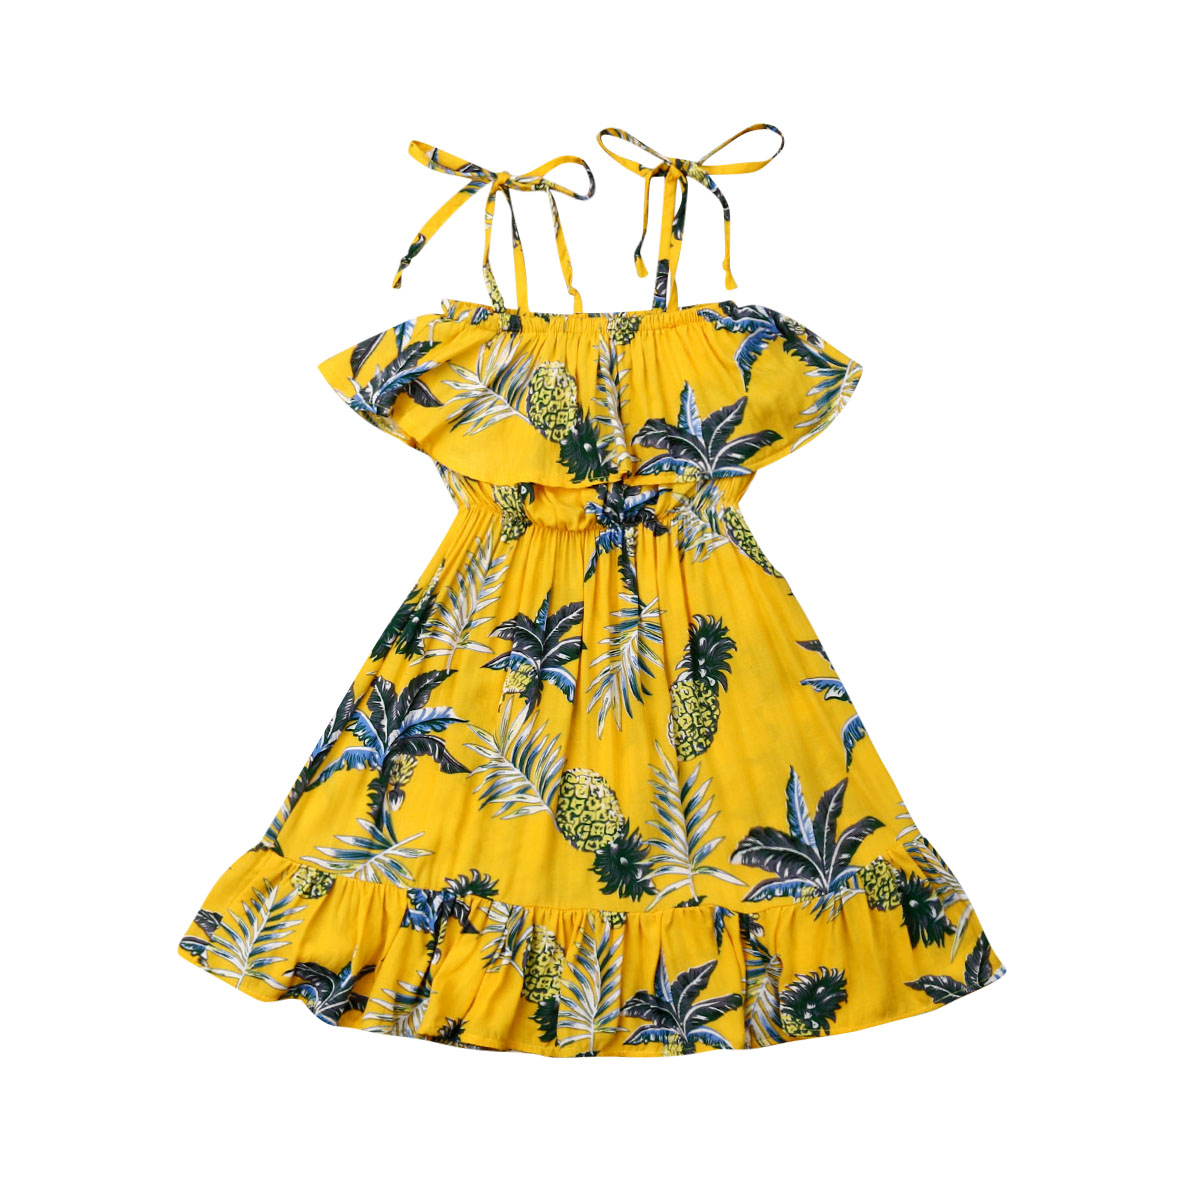 Newborn Kid Baby Girl Sleeveless Sling Ruffles Holiday Leaves Pineapple Yellow Cuet Dress Party Princess Floral Sundress Outfit(China)